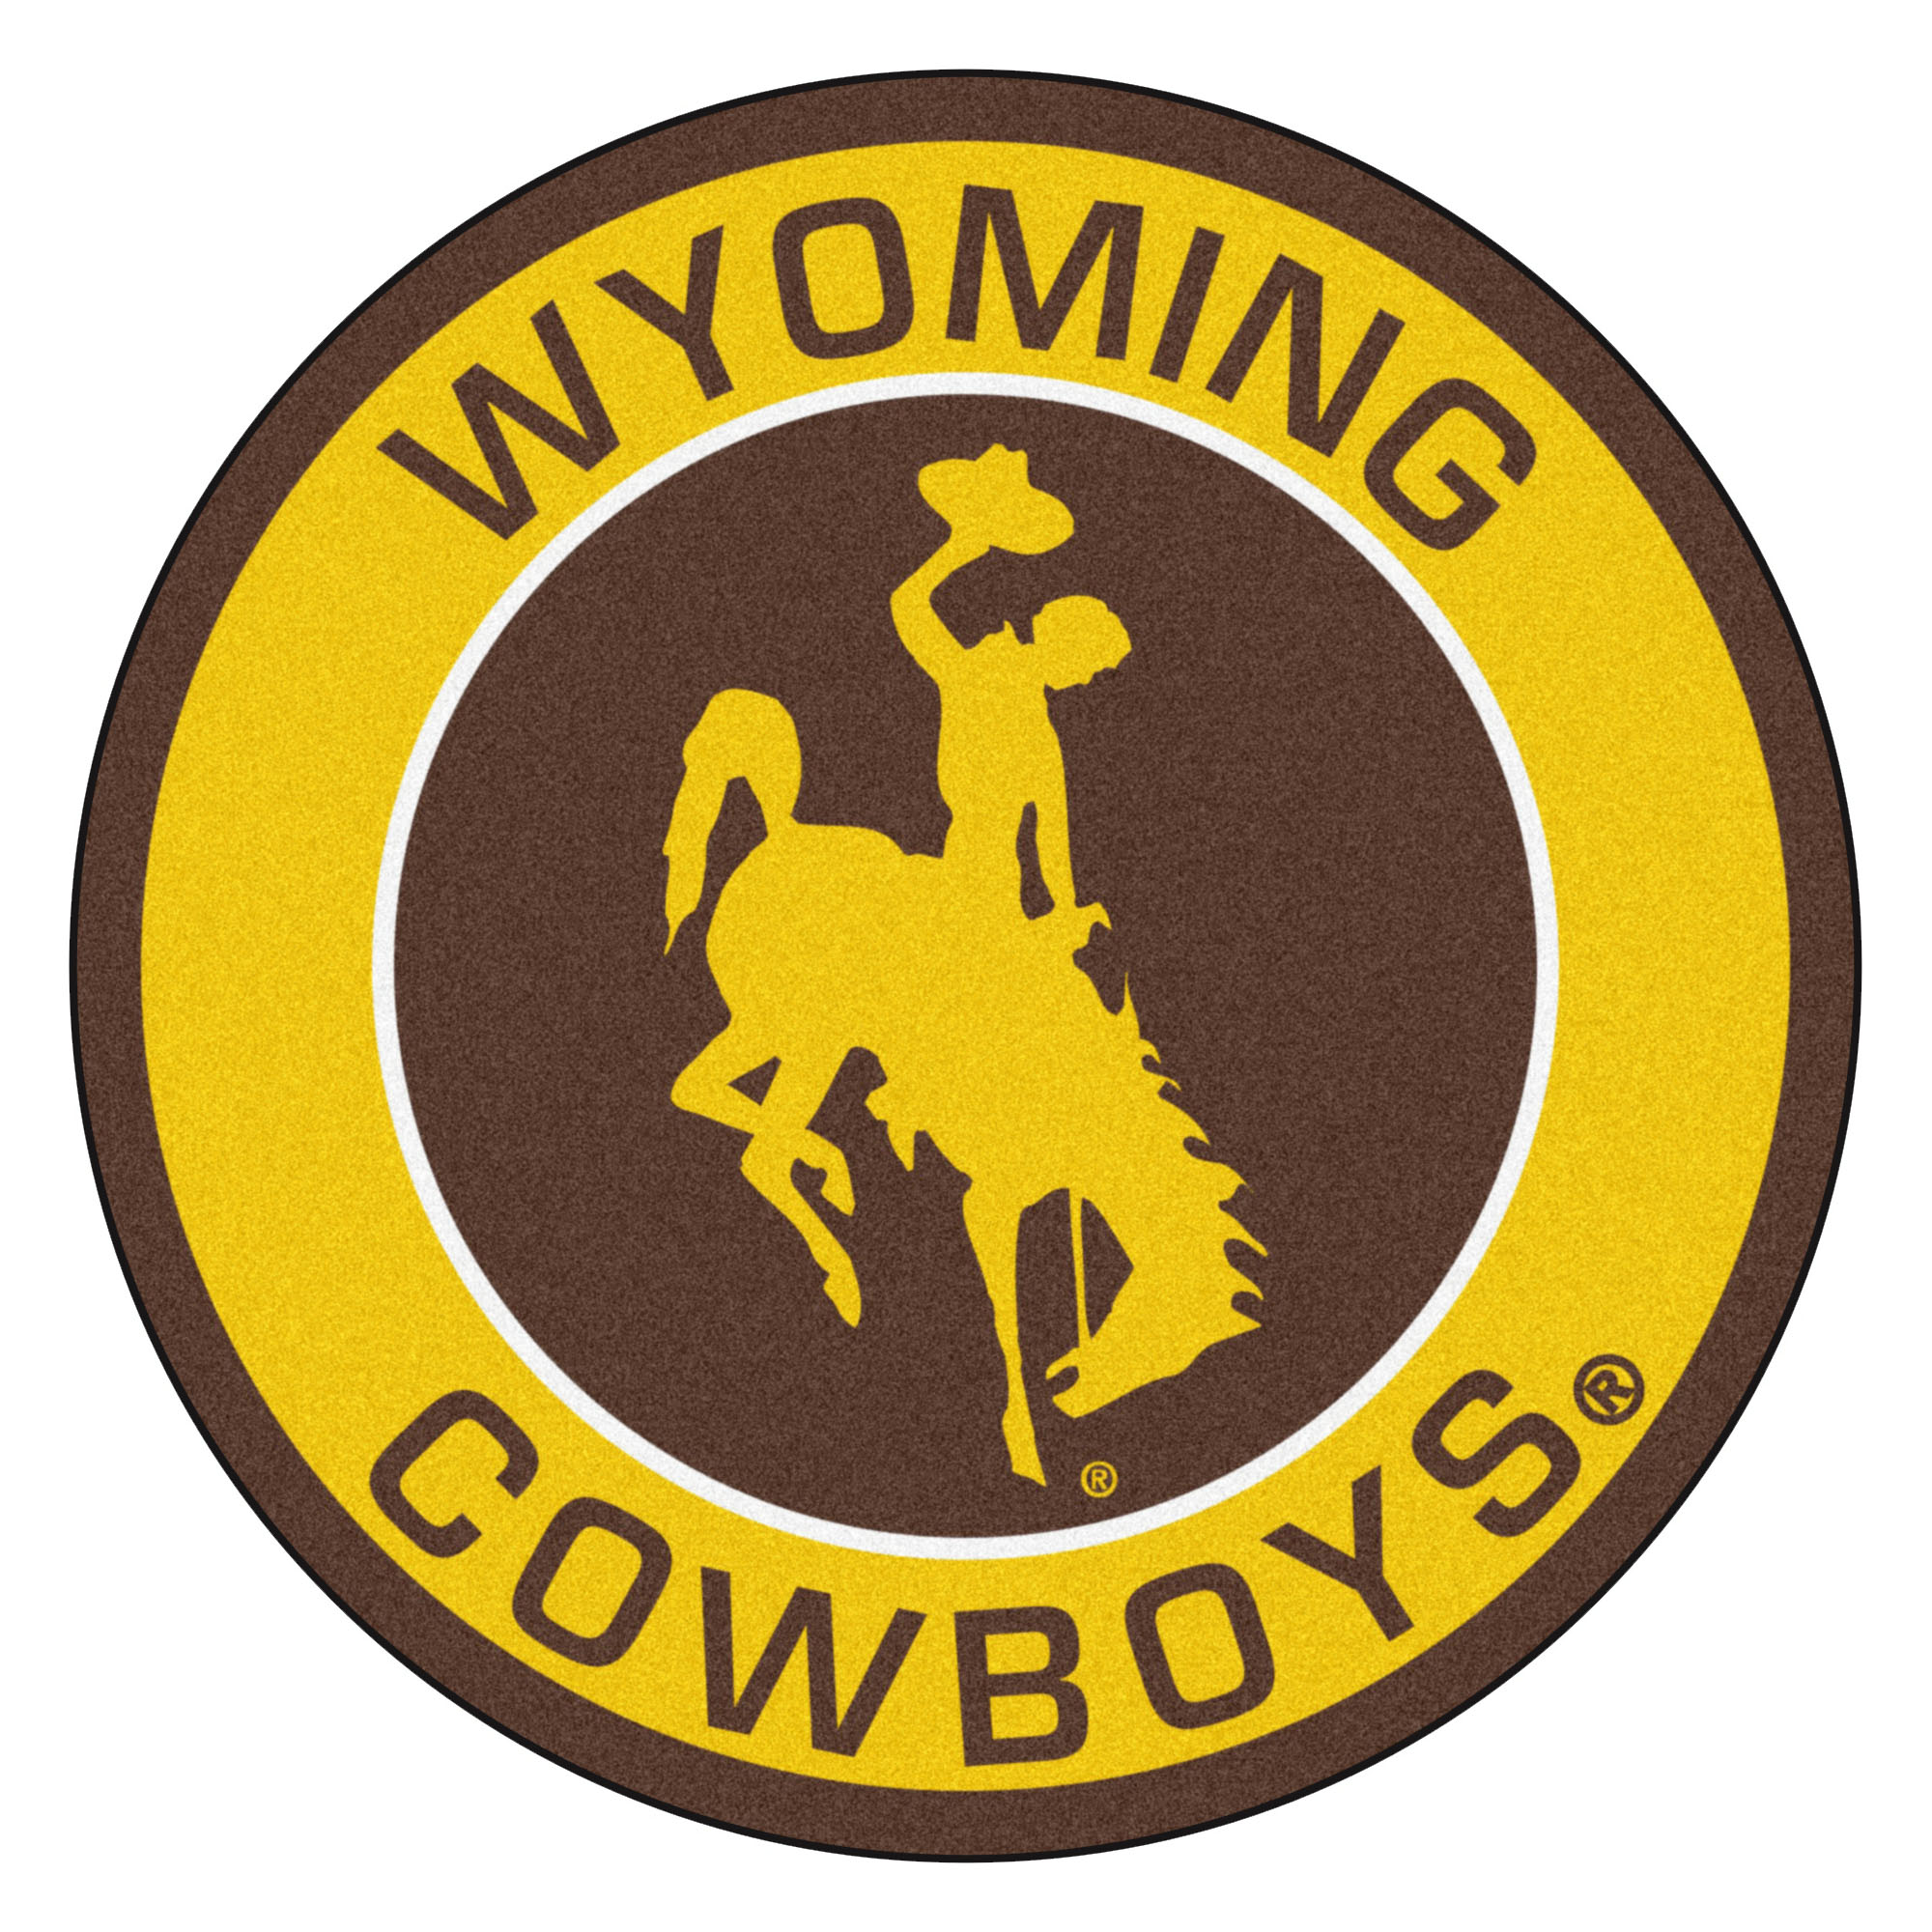 Wyoming Cowboys Tickets